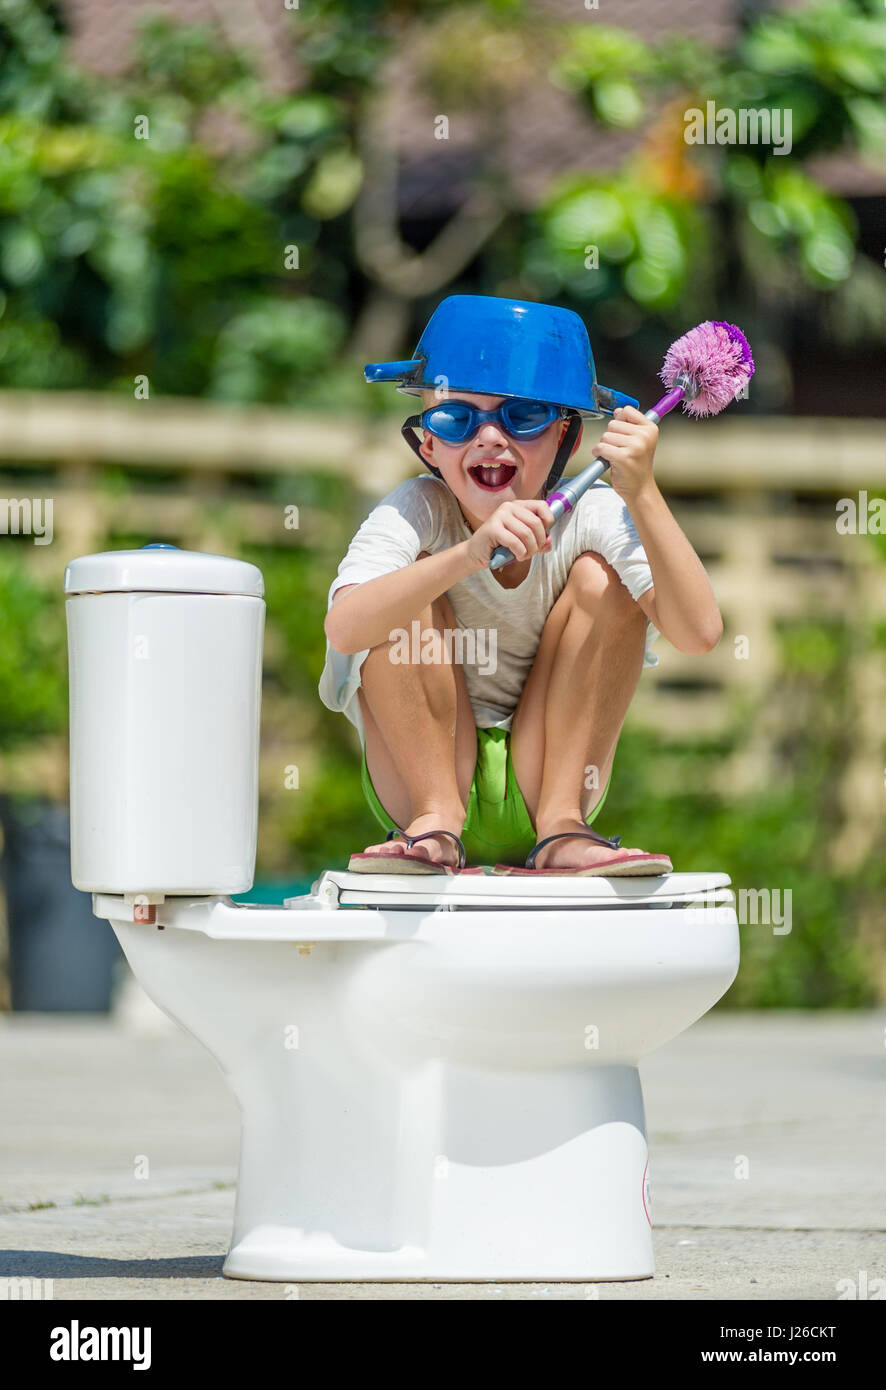 Absurd picture: cute boy in goggles sitting on the toilet, which is installed in the middle of the street. Pan on - Stock Image